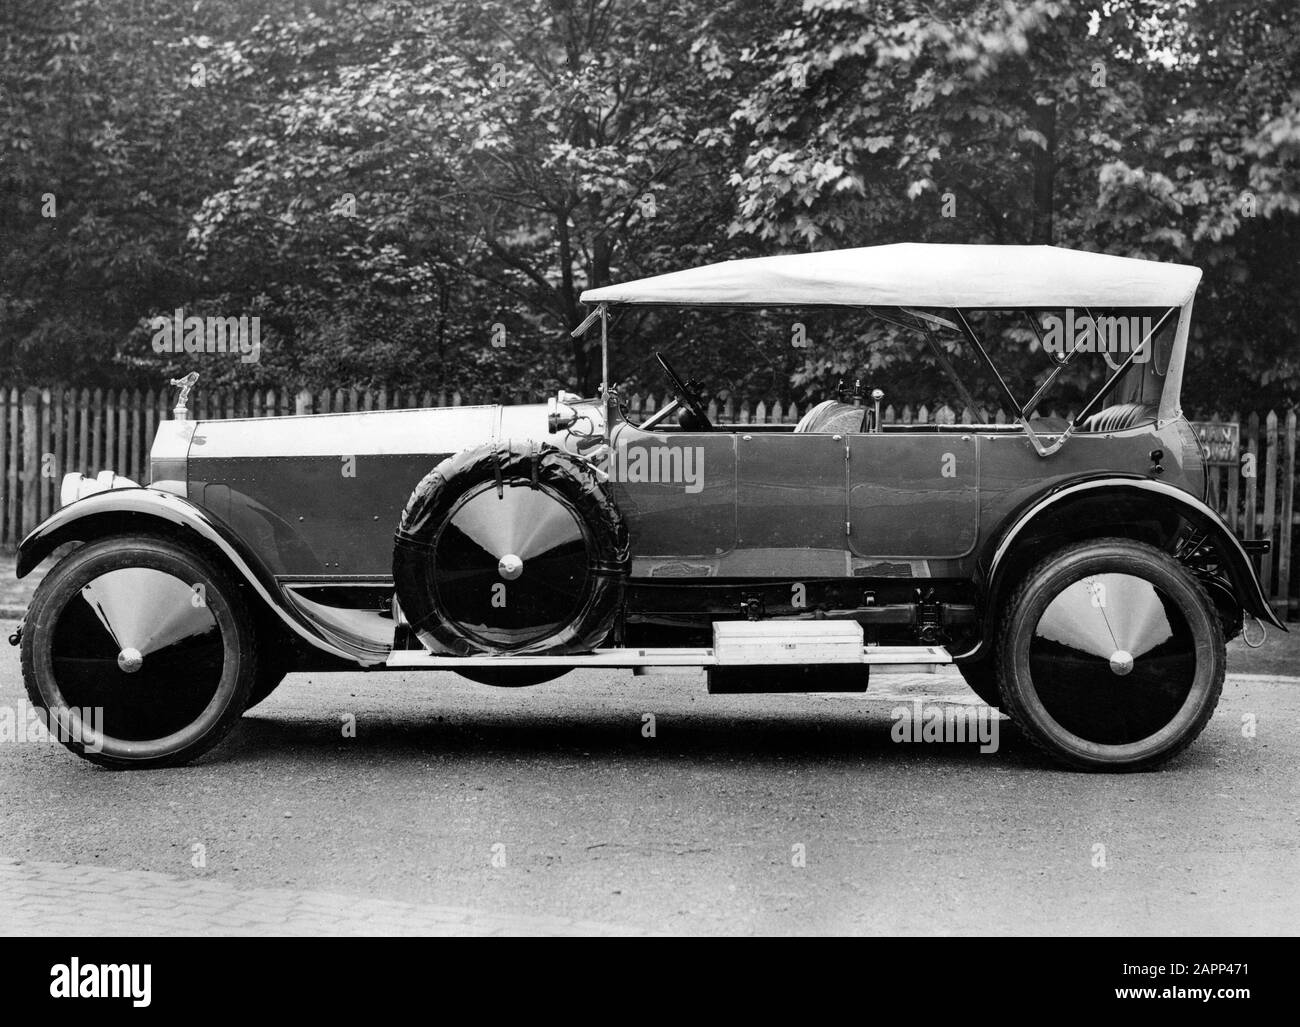 Rolls Royce Vintage Black and White Stock Photos & Images - Alamy